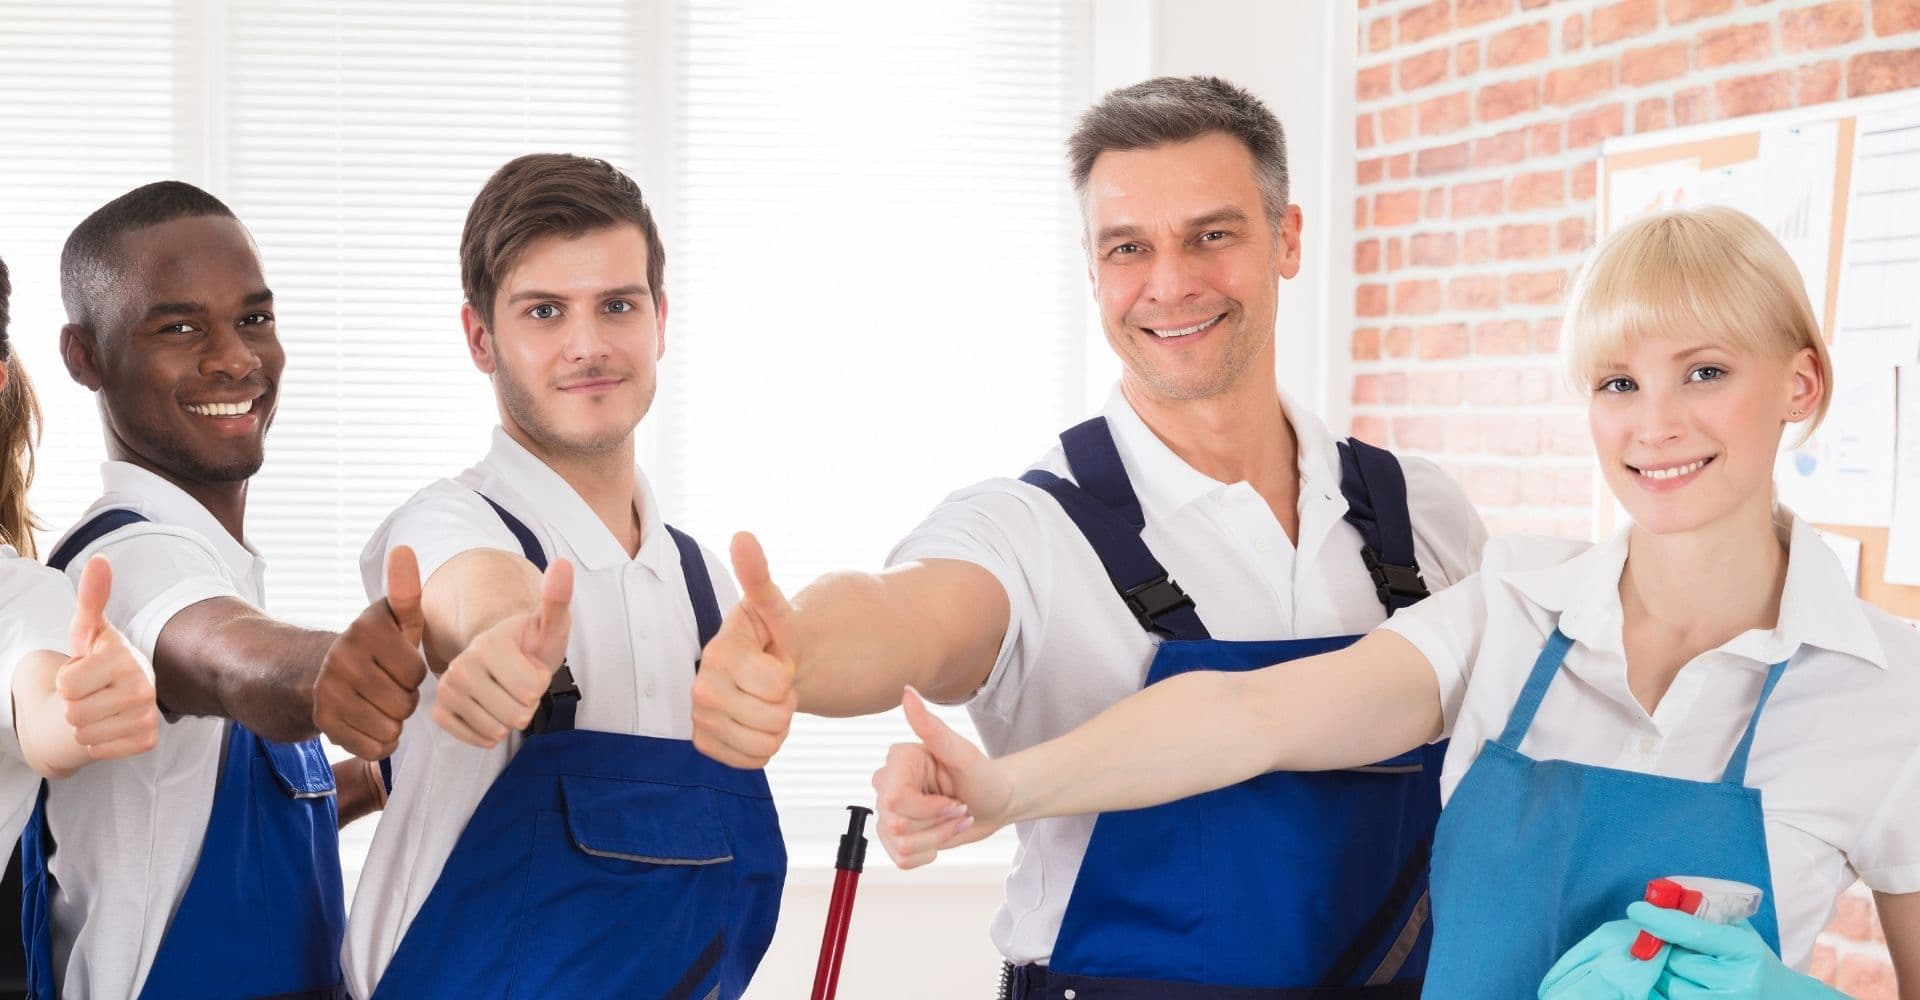 Euro-clean workers